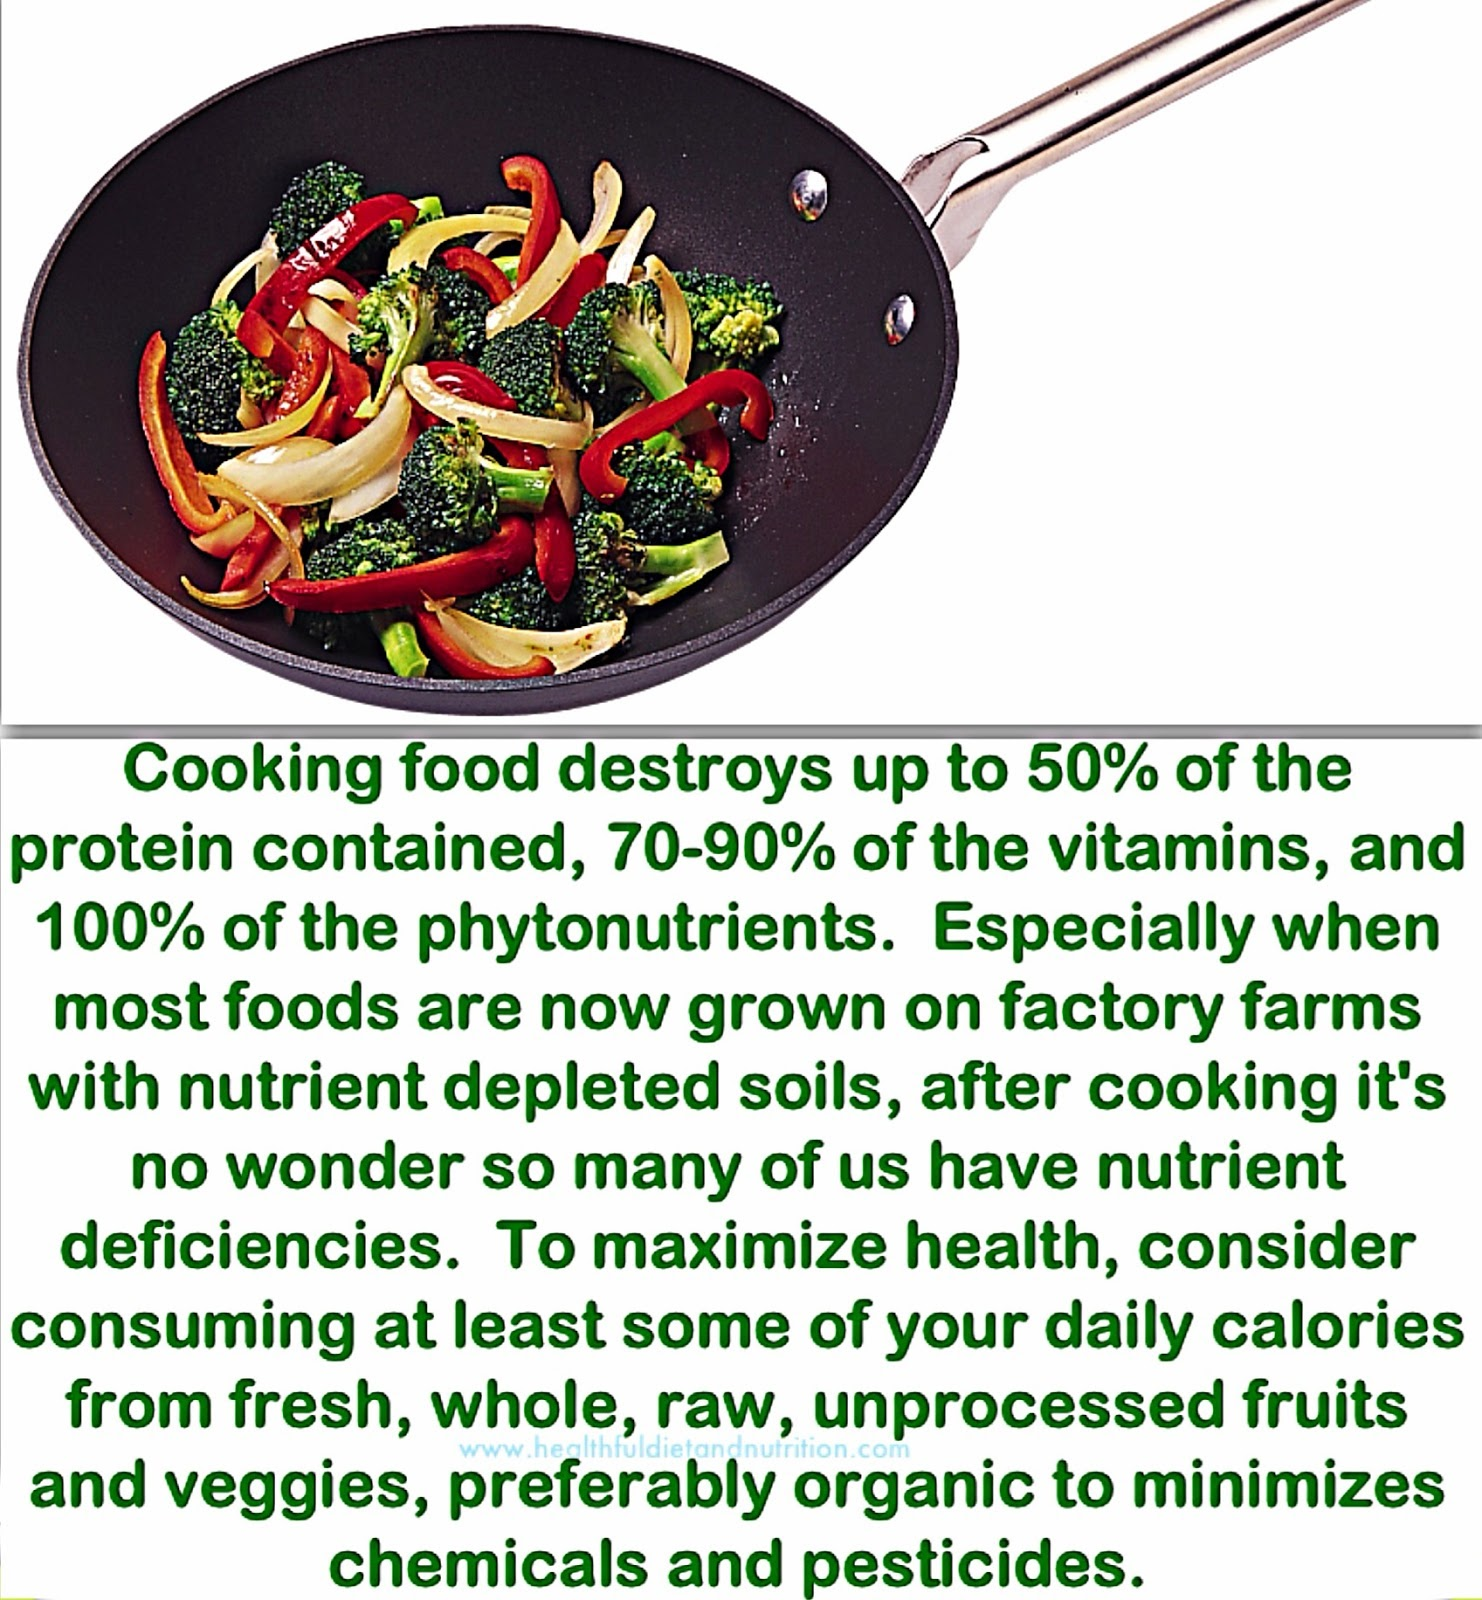 Eat Some Of Your Daily Calories From fresh, whole, unprocessed Raw Foods